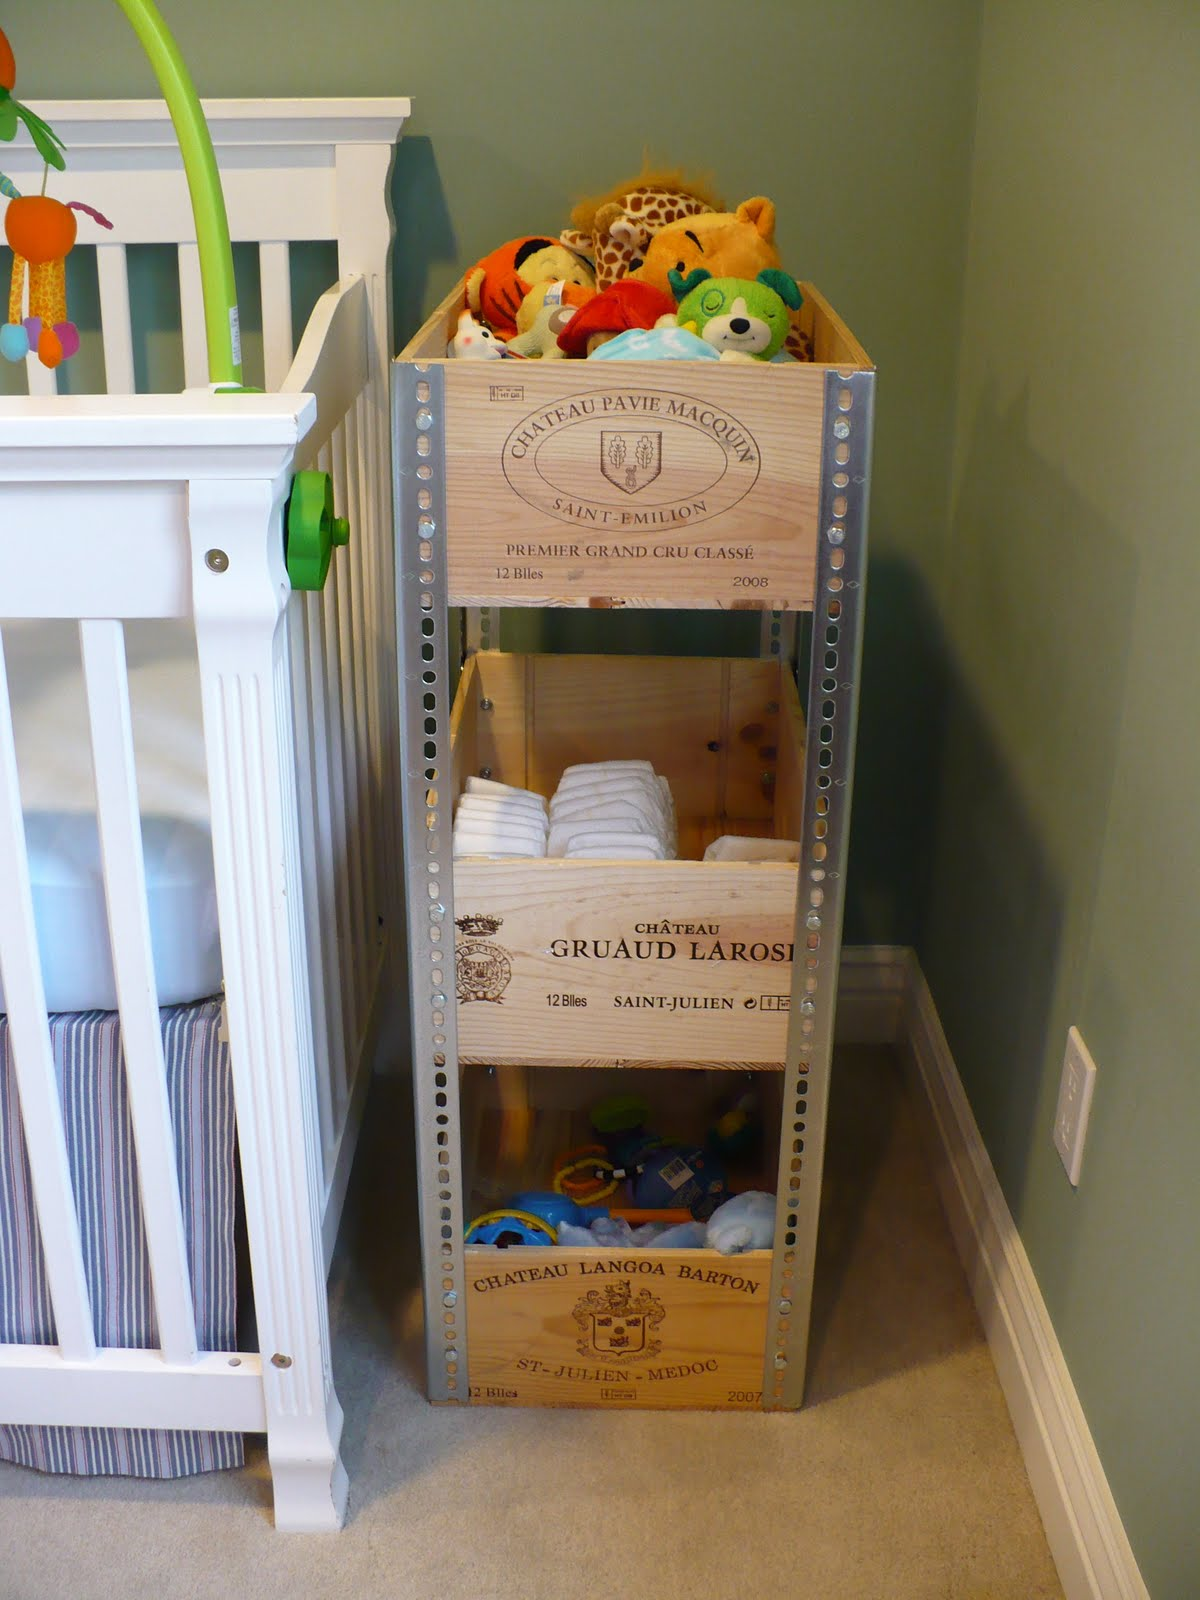 Pretty neat organizer wine crate shelves What to do with wine crates